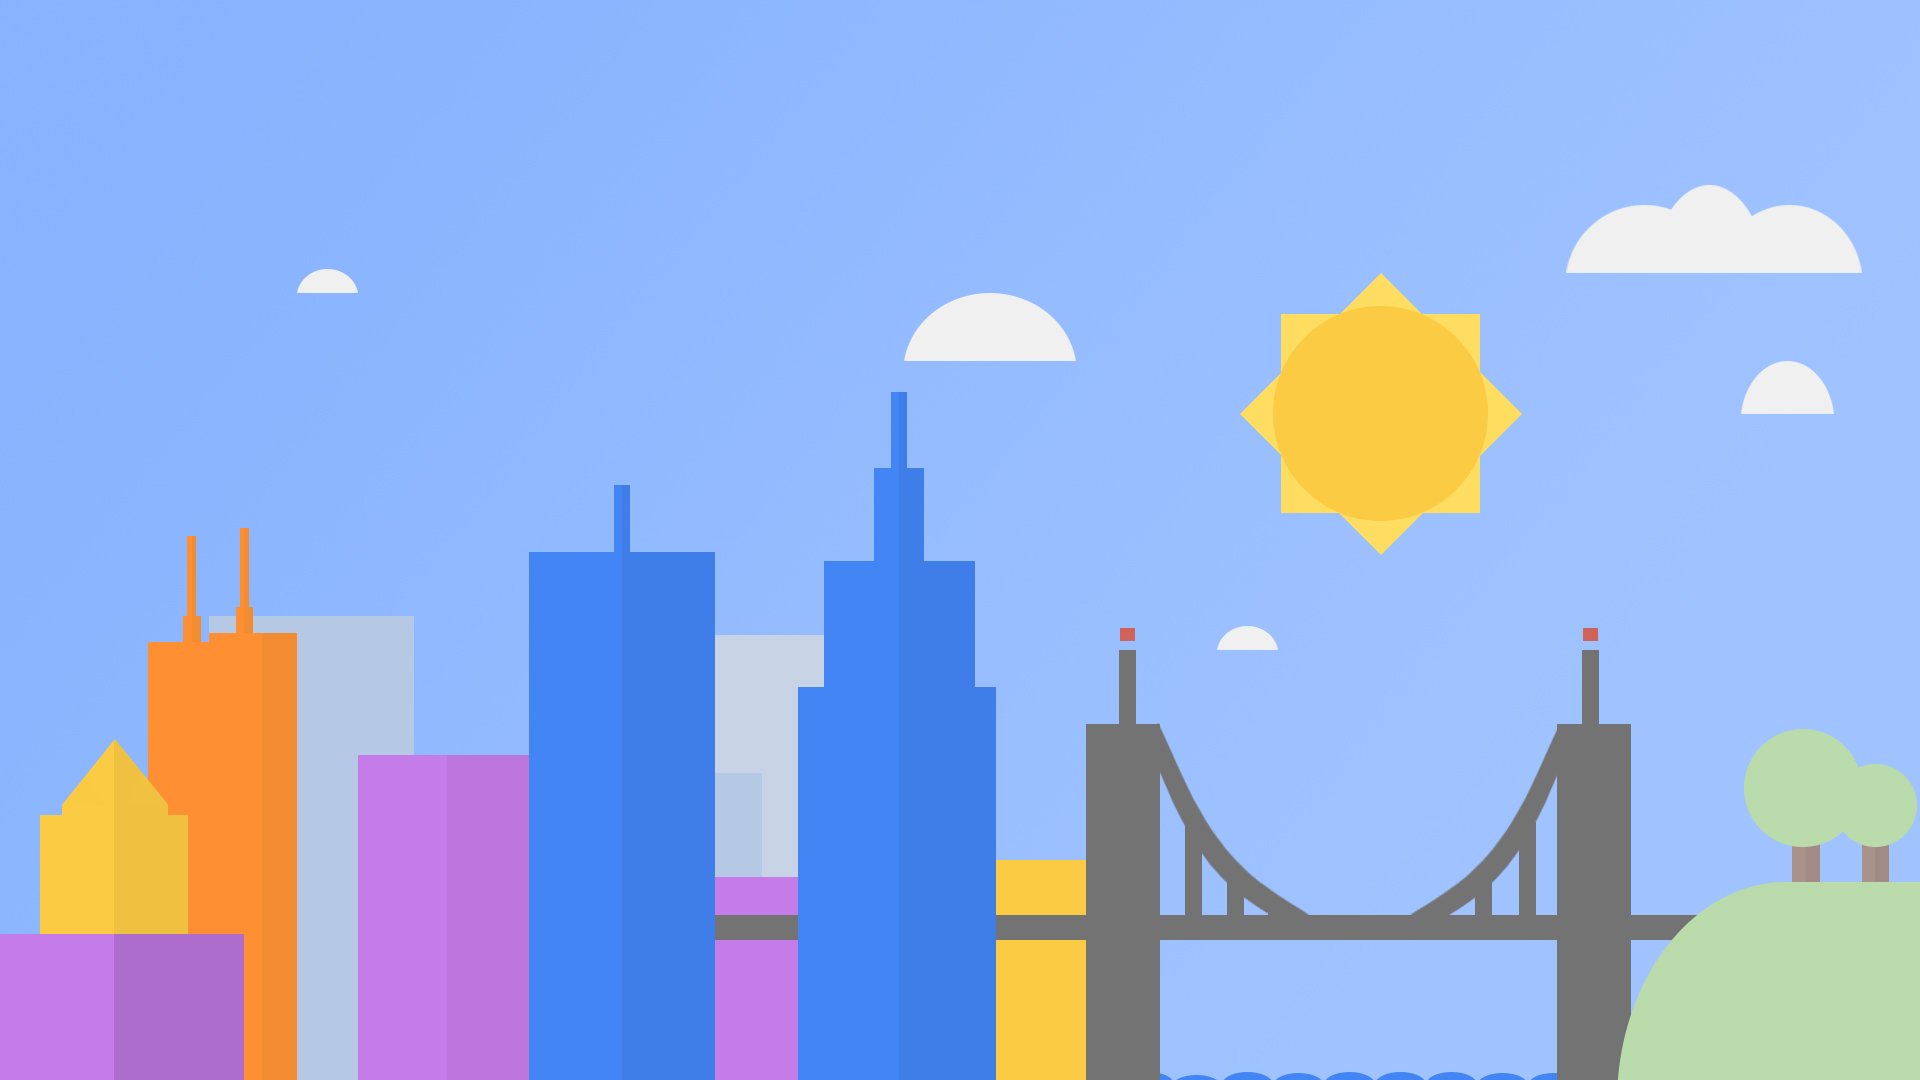 Google Now Wallpaper For Iphone Google inspired wallpaper by 1920x1080